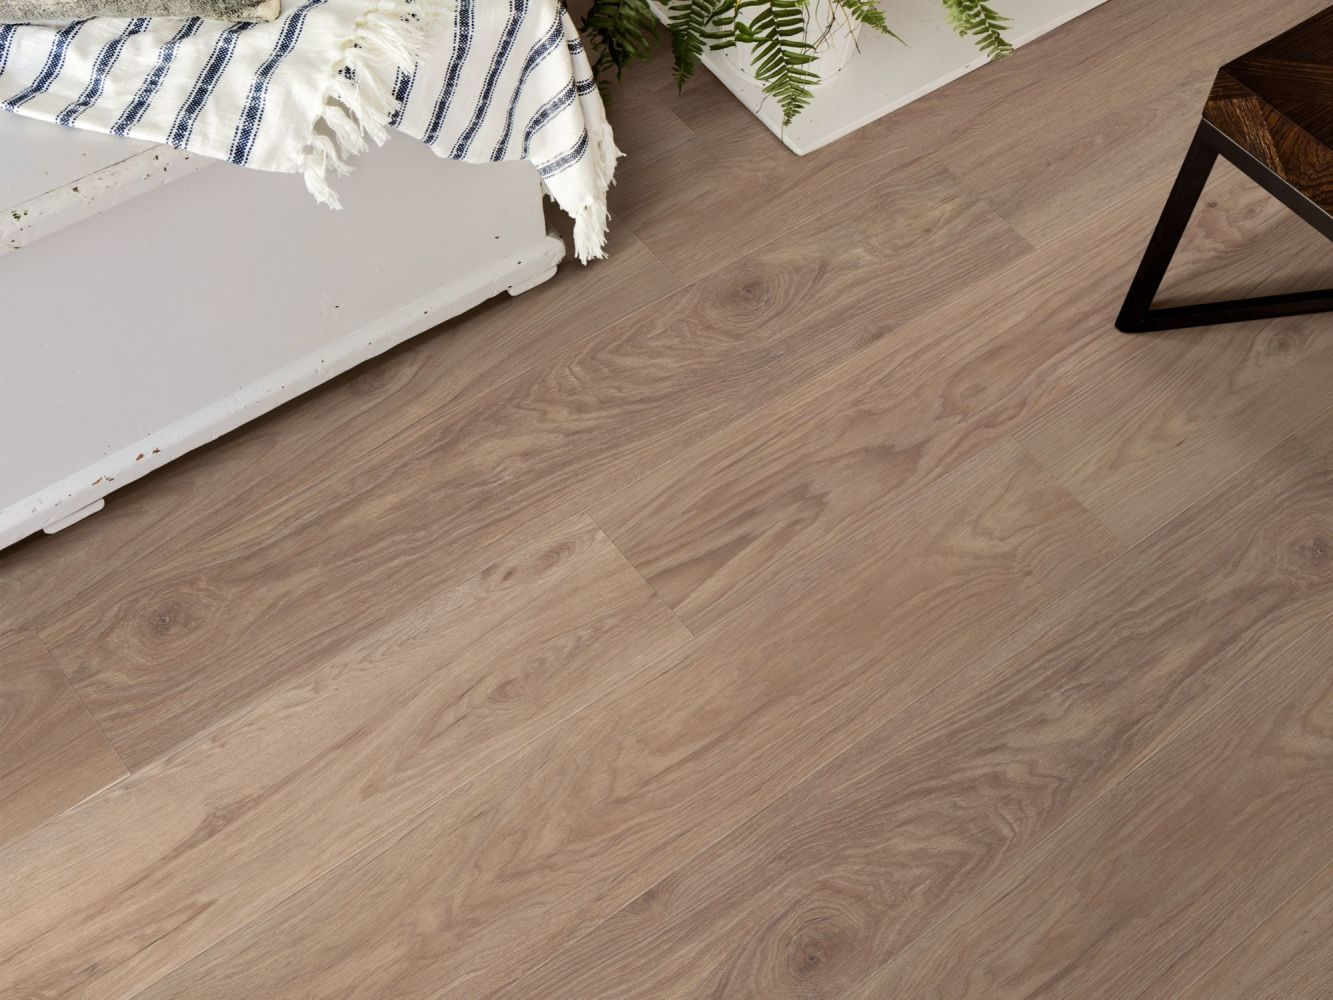 Shaw Floors Resilient Residential Pantheon Hd+ Natural Bevel Truffle 07234_1051V